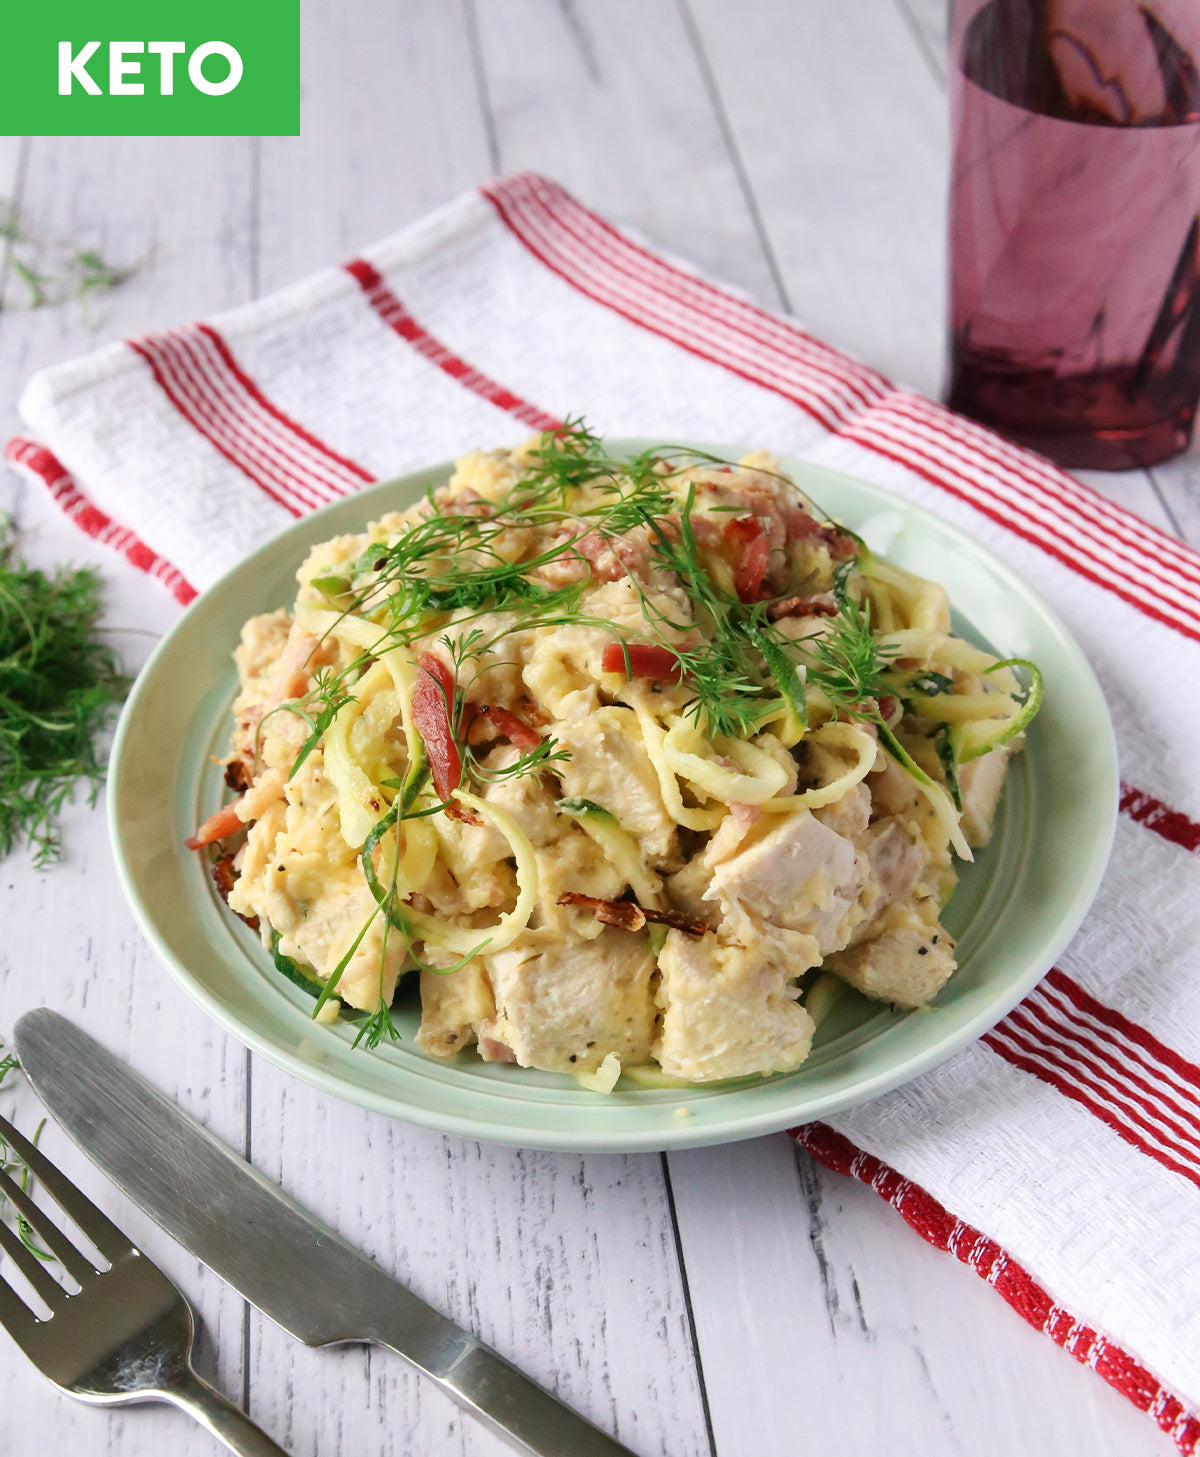 Keto Chicken Carbonara - Muscle Fuel